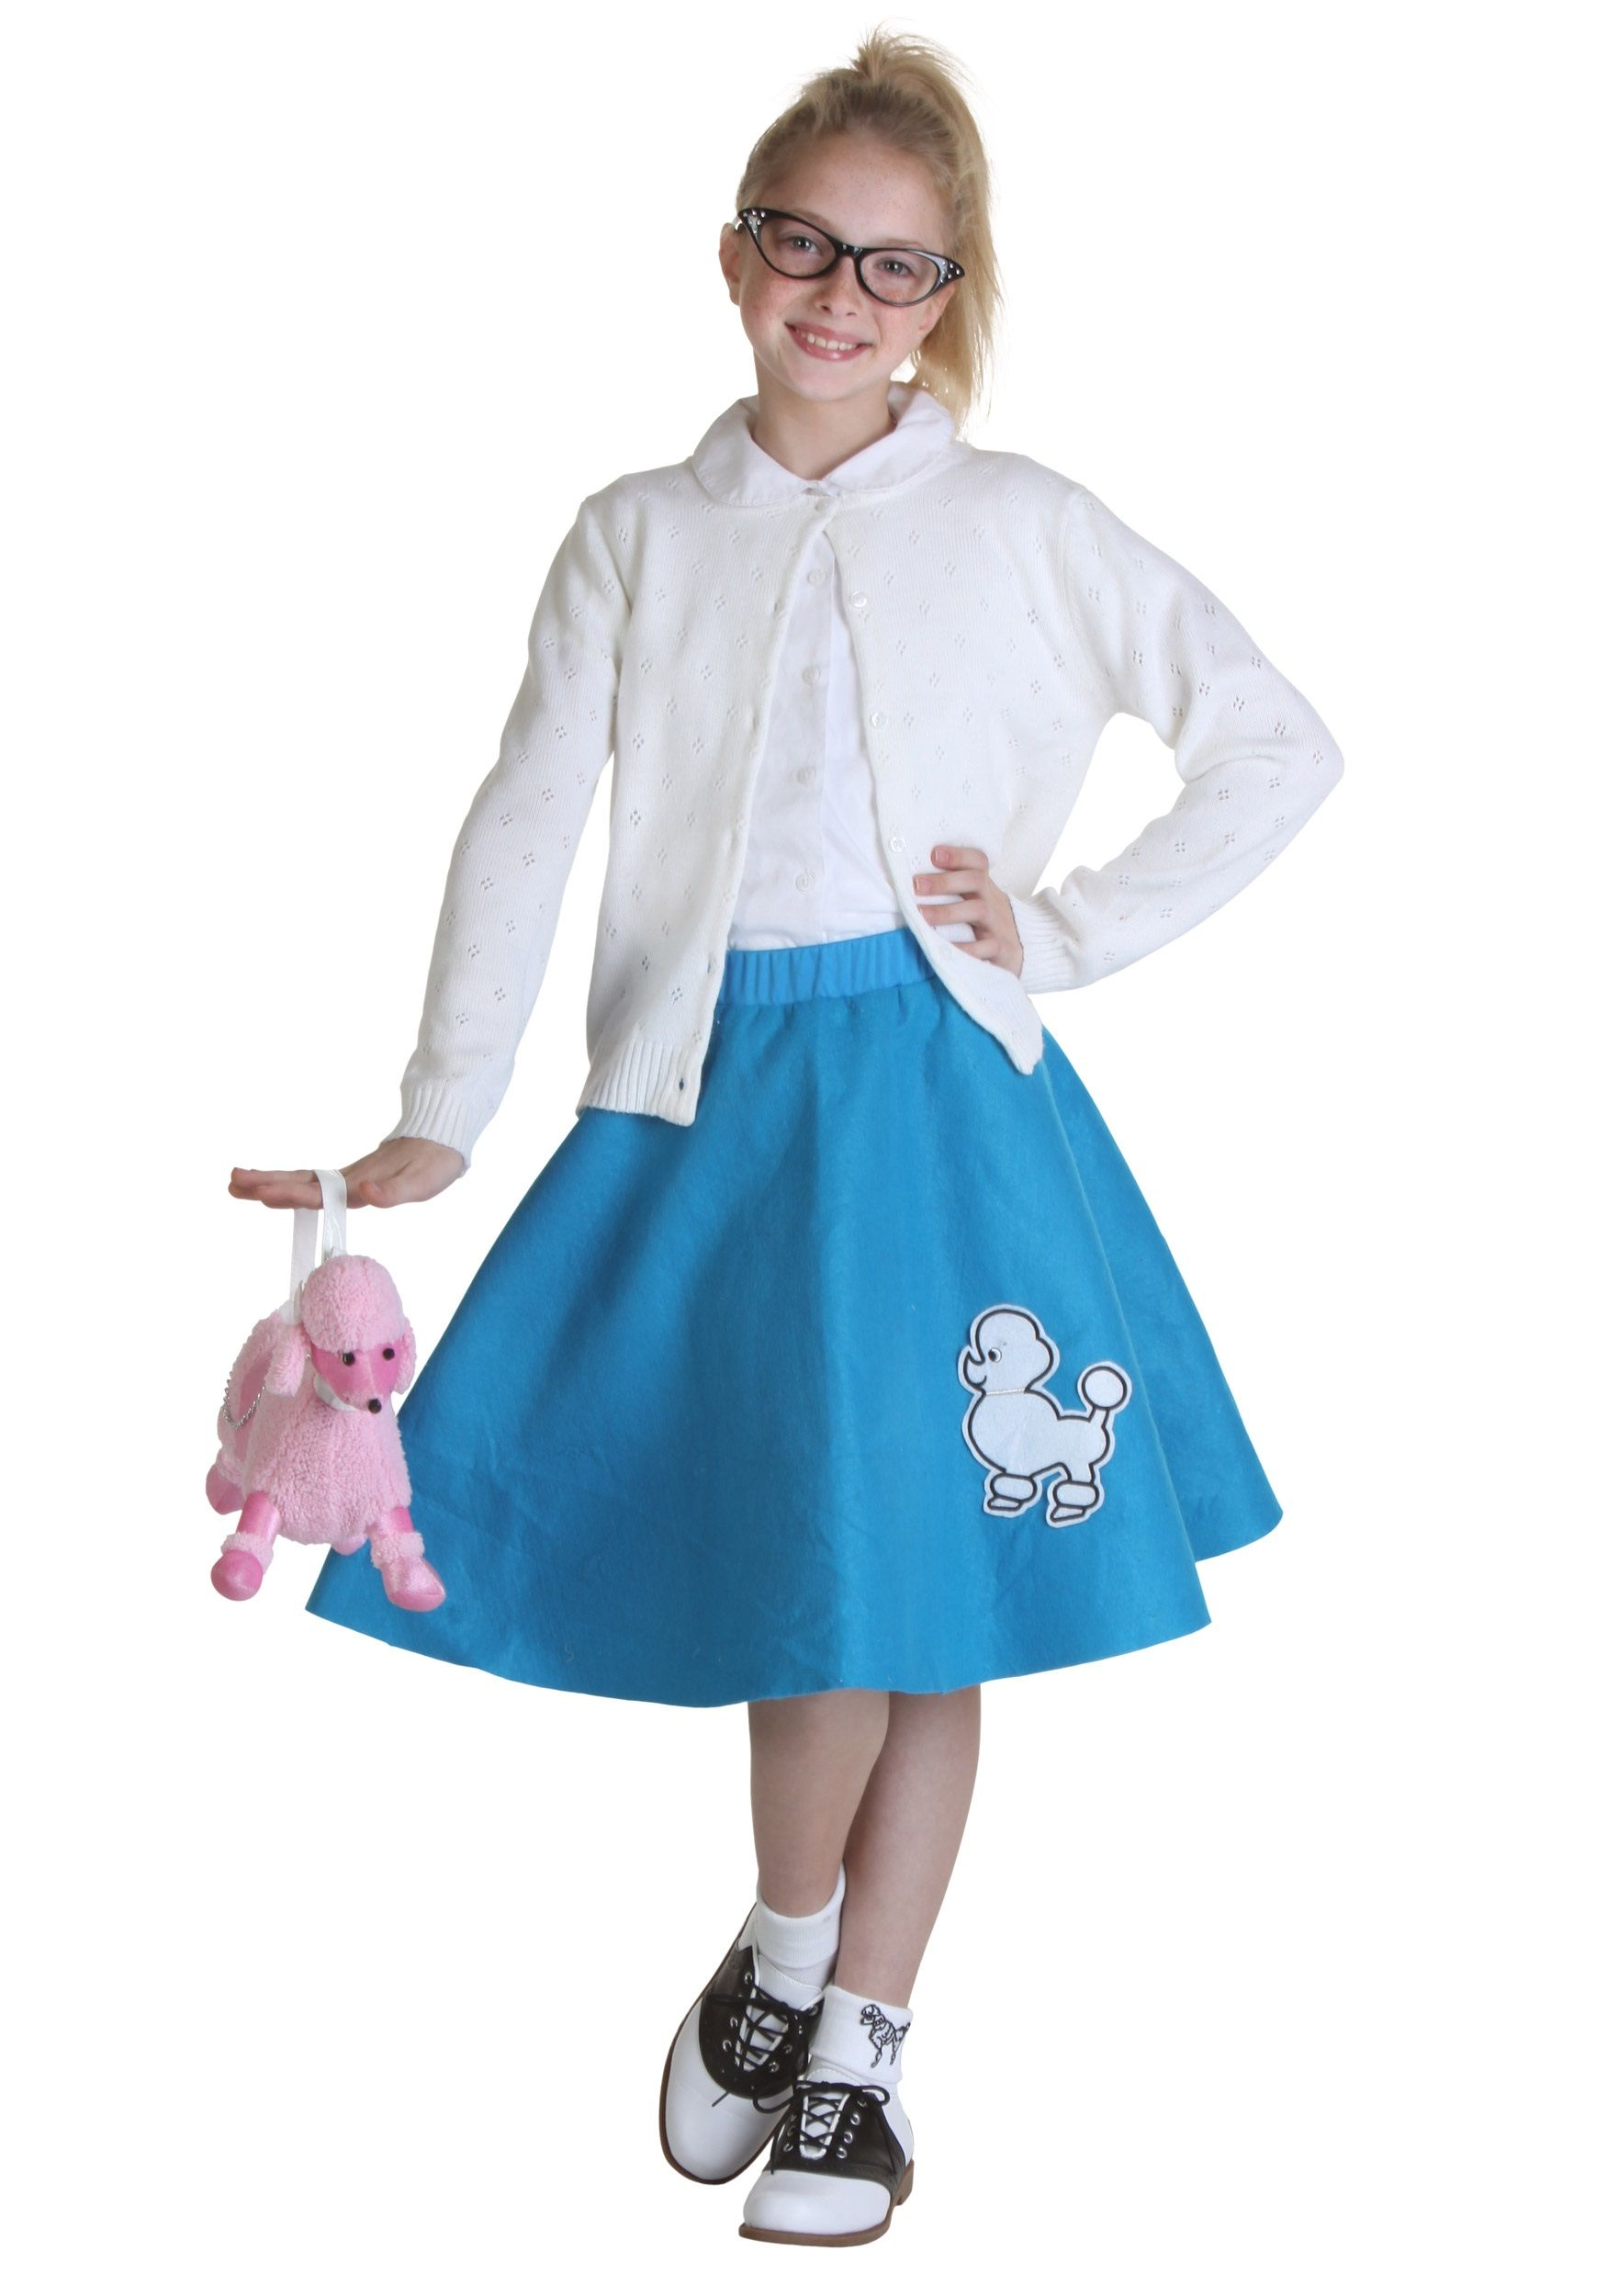 How To Make A Poodle Skirt That Became A Trend In The 50s ...